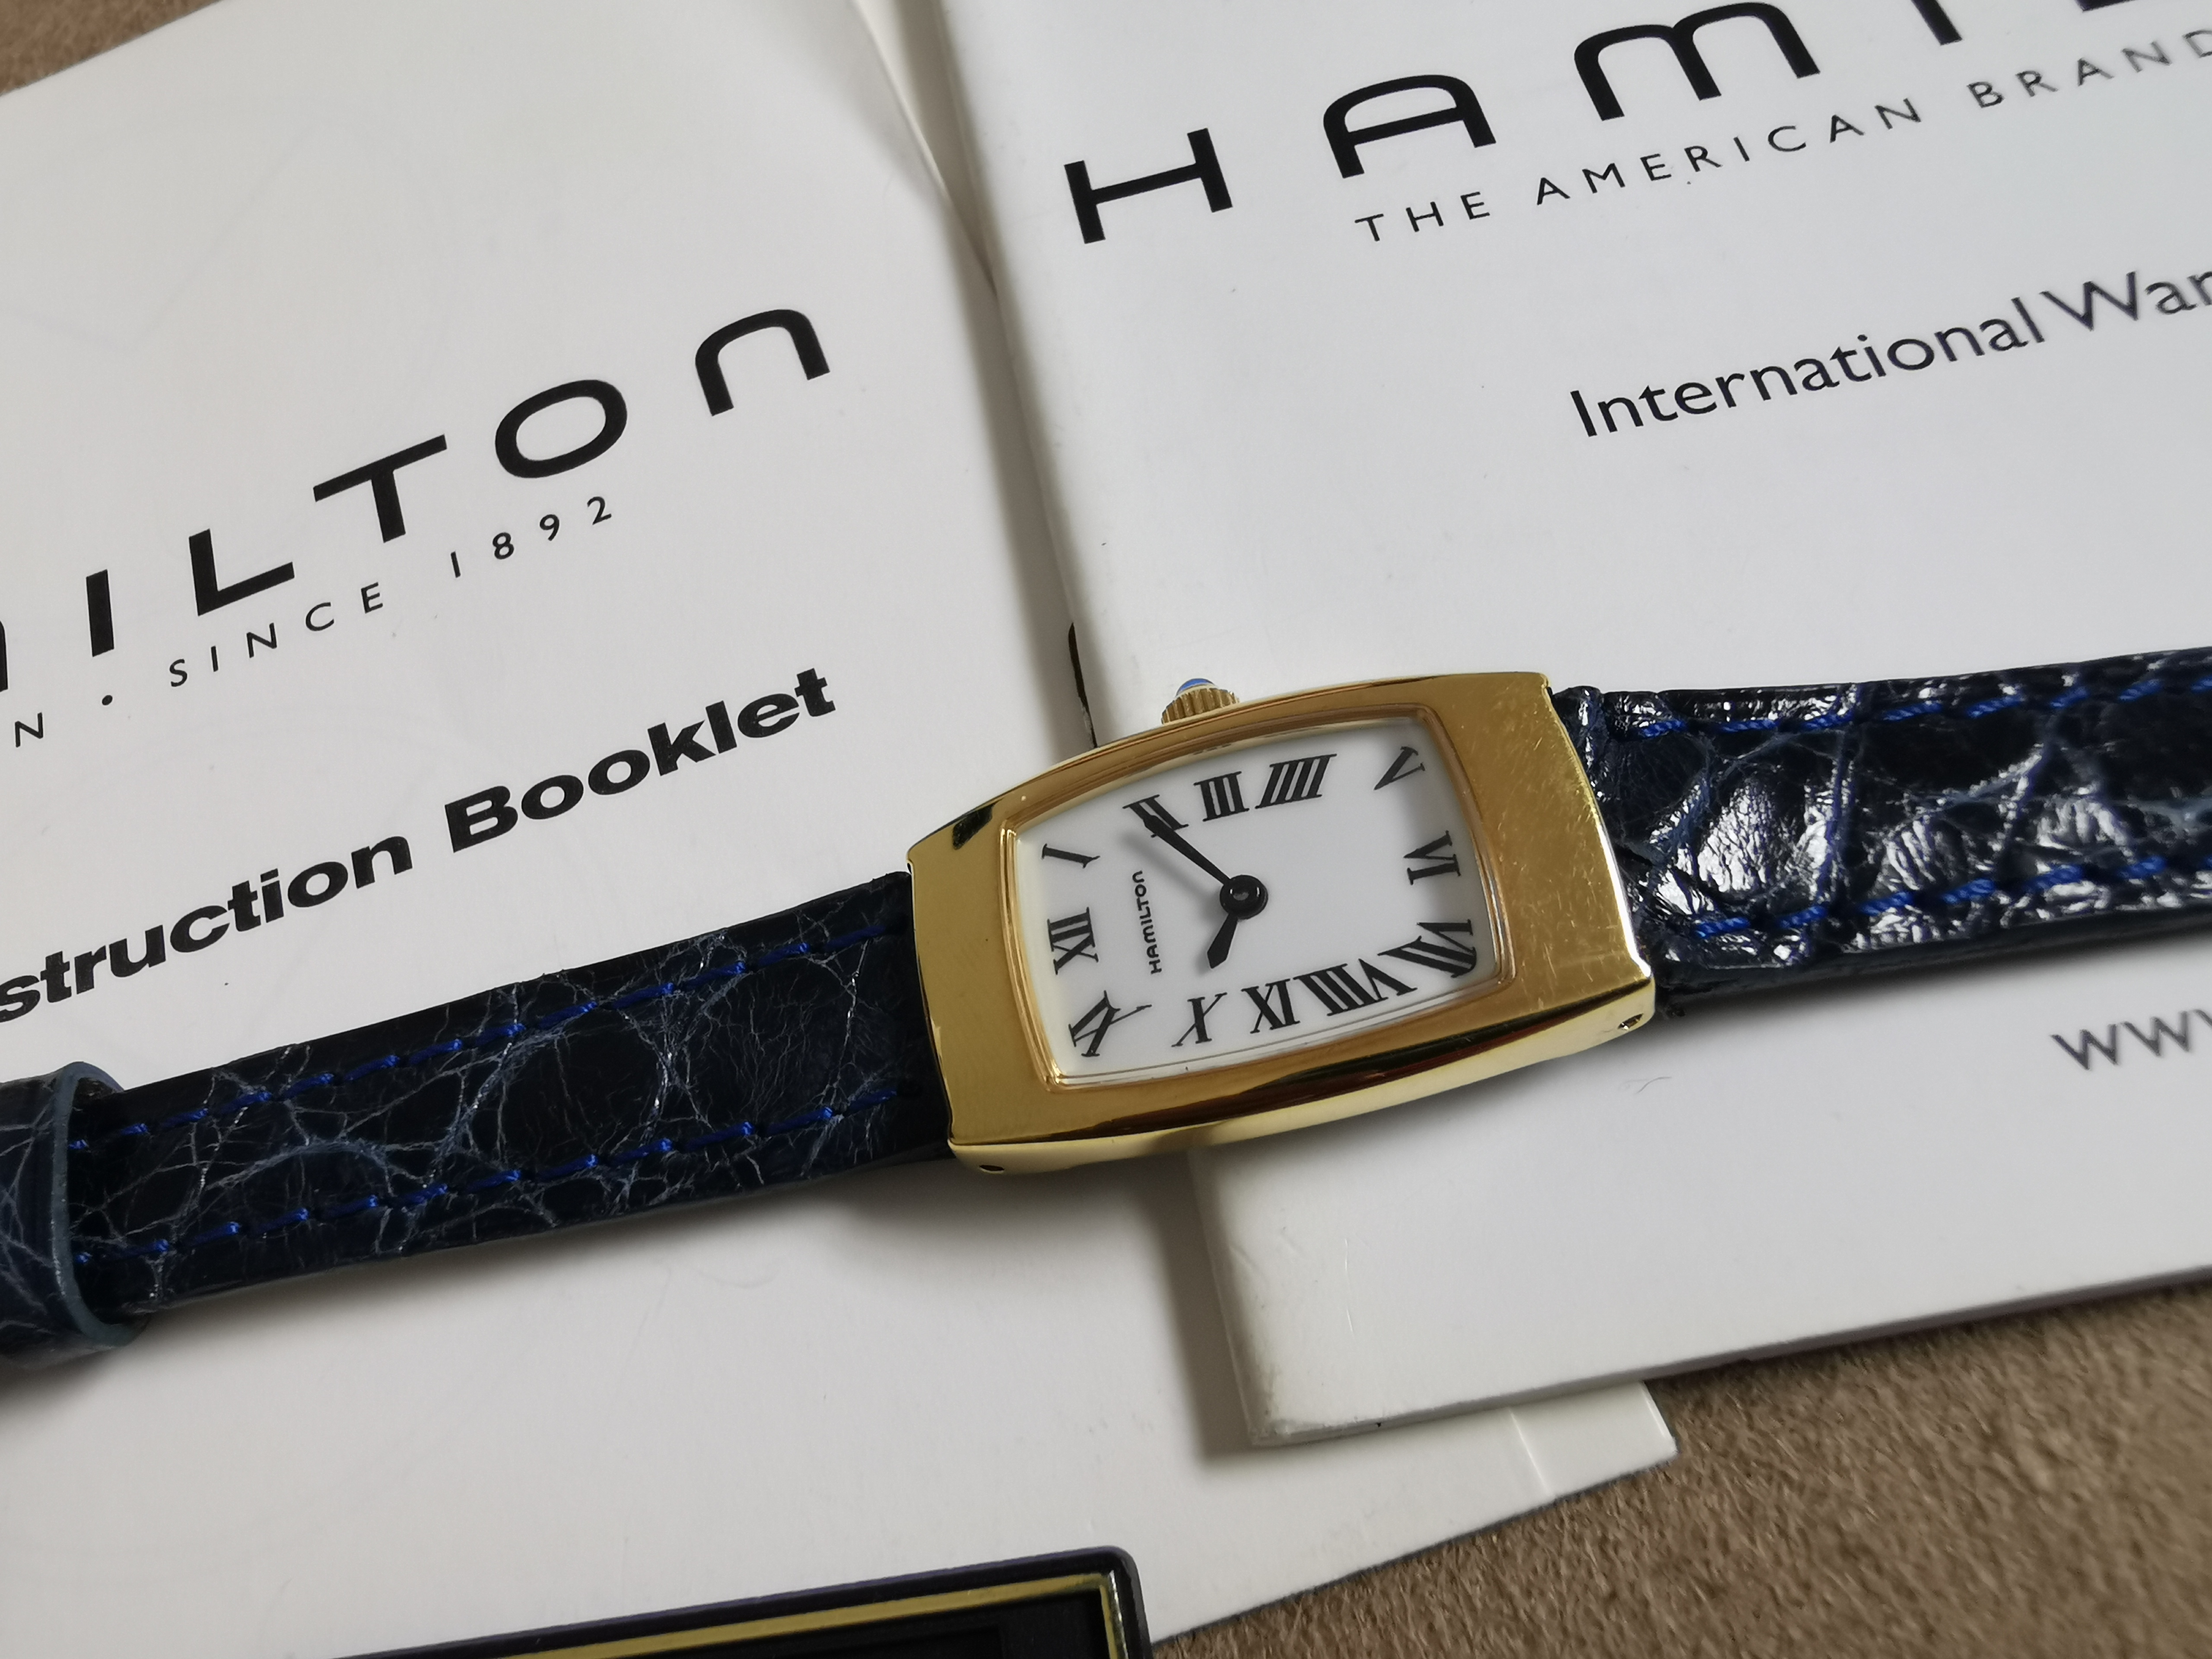 Hamilton 8210 White Dial blu Leather Quartz Women's Watch Newoldstock | San Giorgio a Cremano